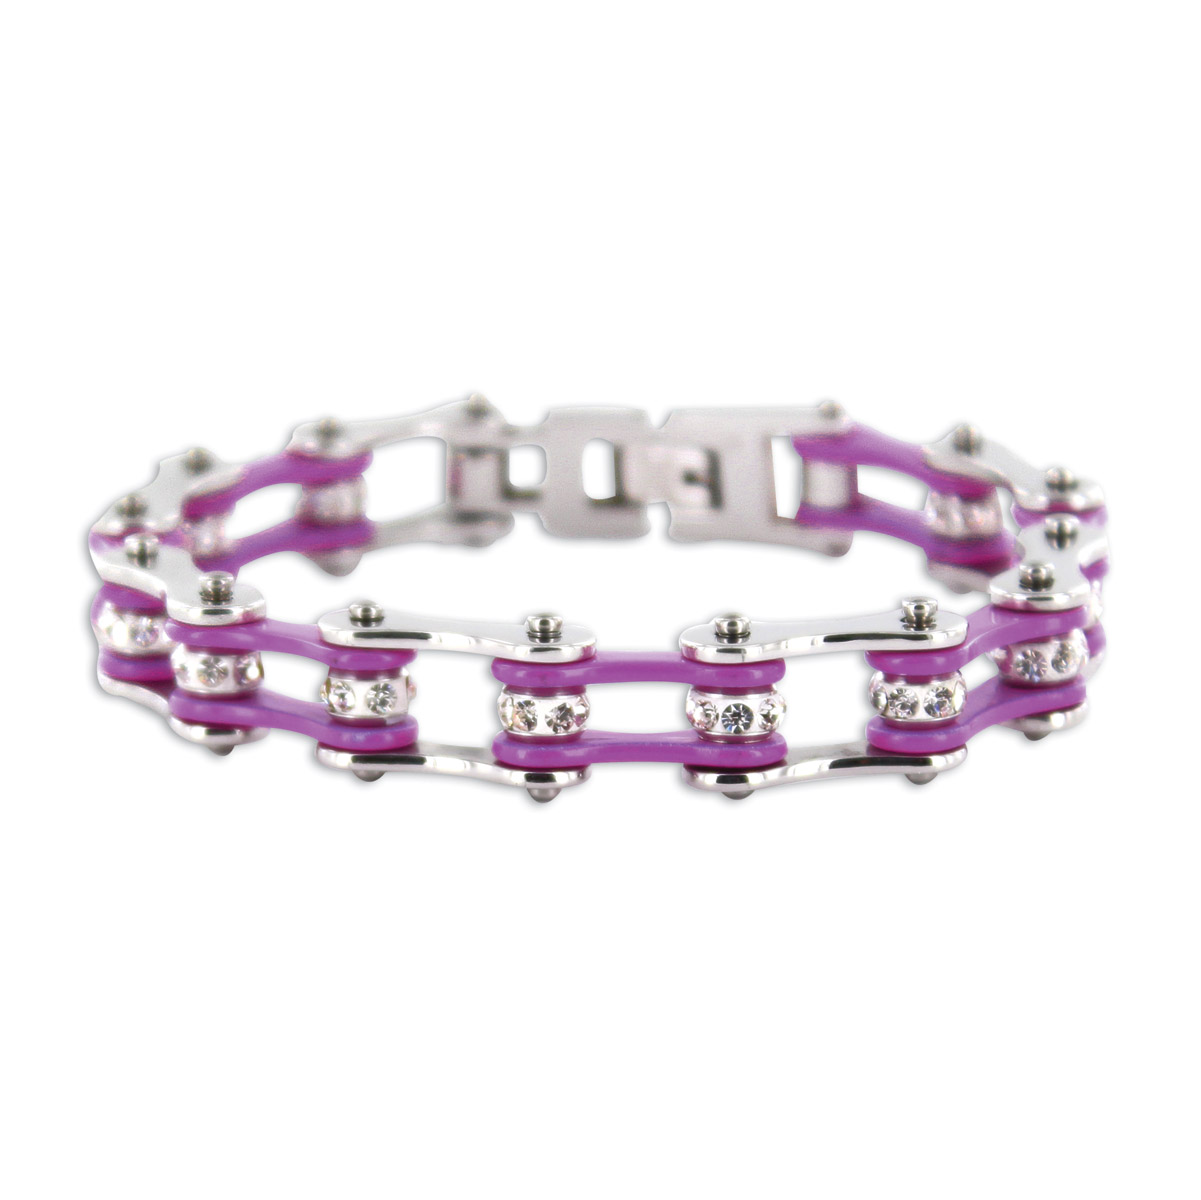 Kodiak Silver/Purple with Crystals Chain Bracelet